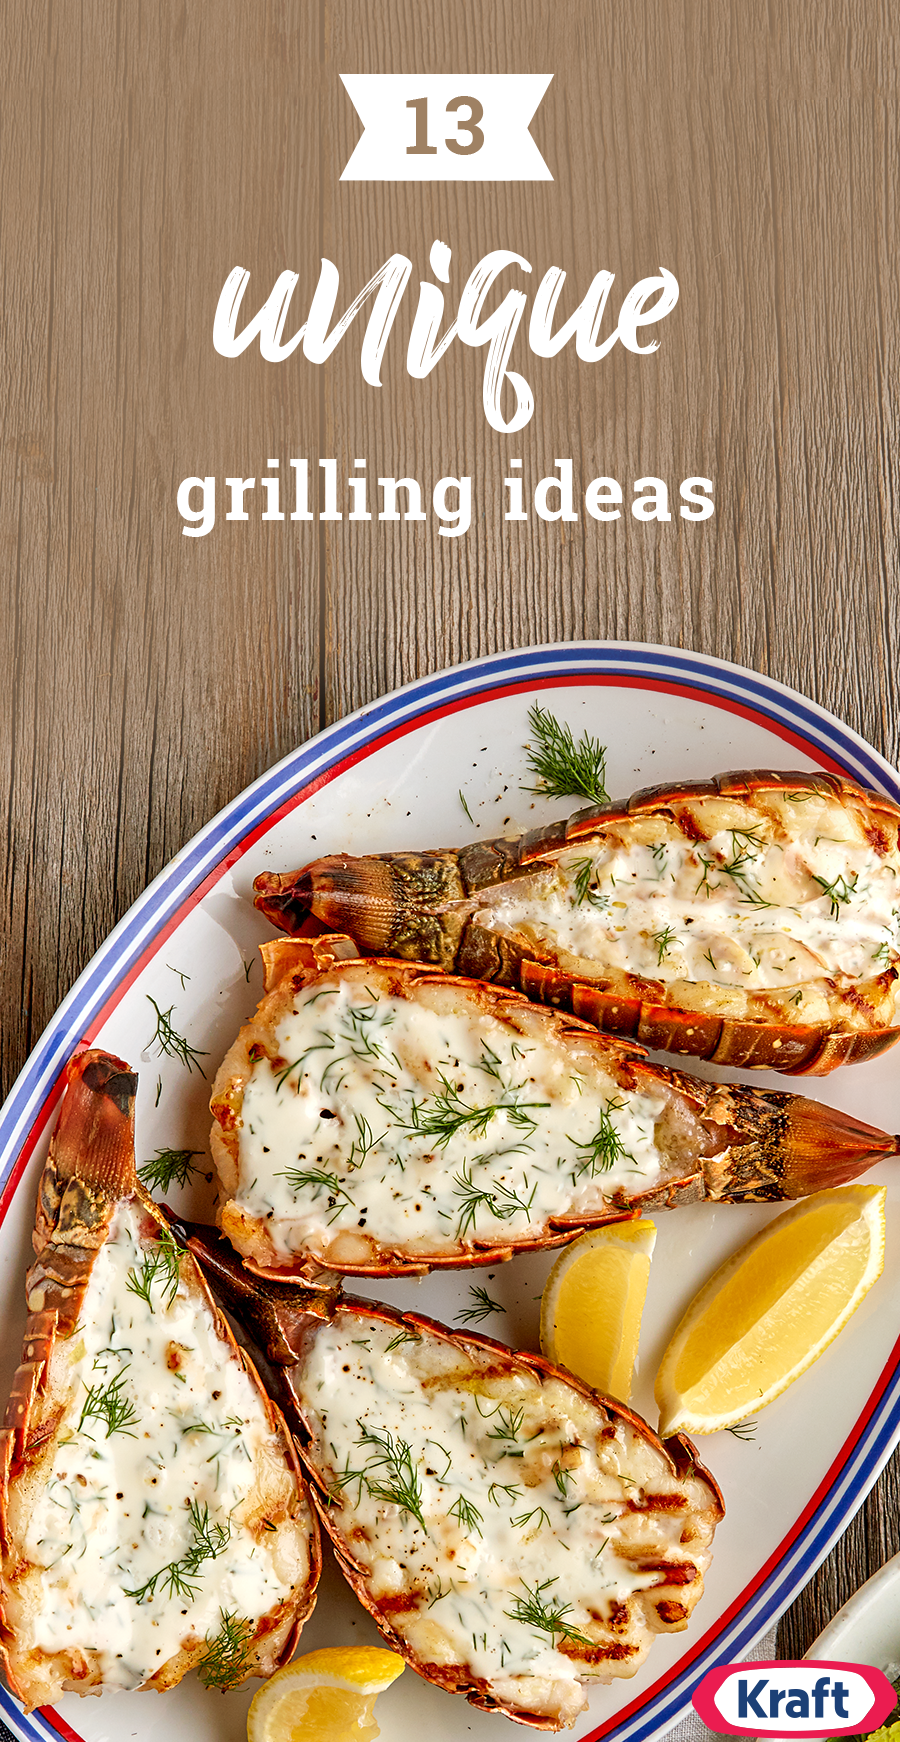 Unique Grilling Ideas Jazz Up Your Summer Cookout Menu With Recipes That Are Sure To Delight F Delicious Barbecue Recipes Unique Grilling Ideas Cookout Menu